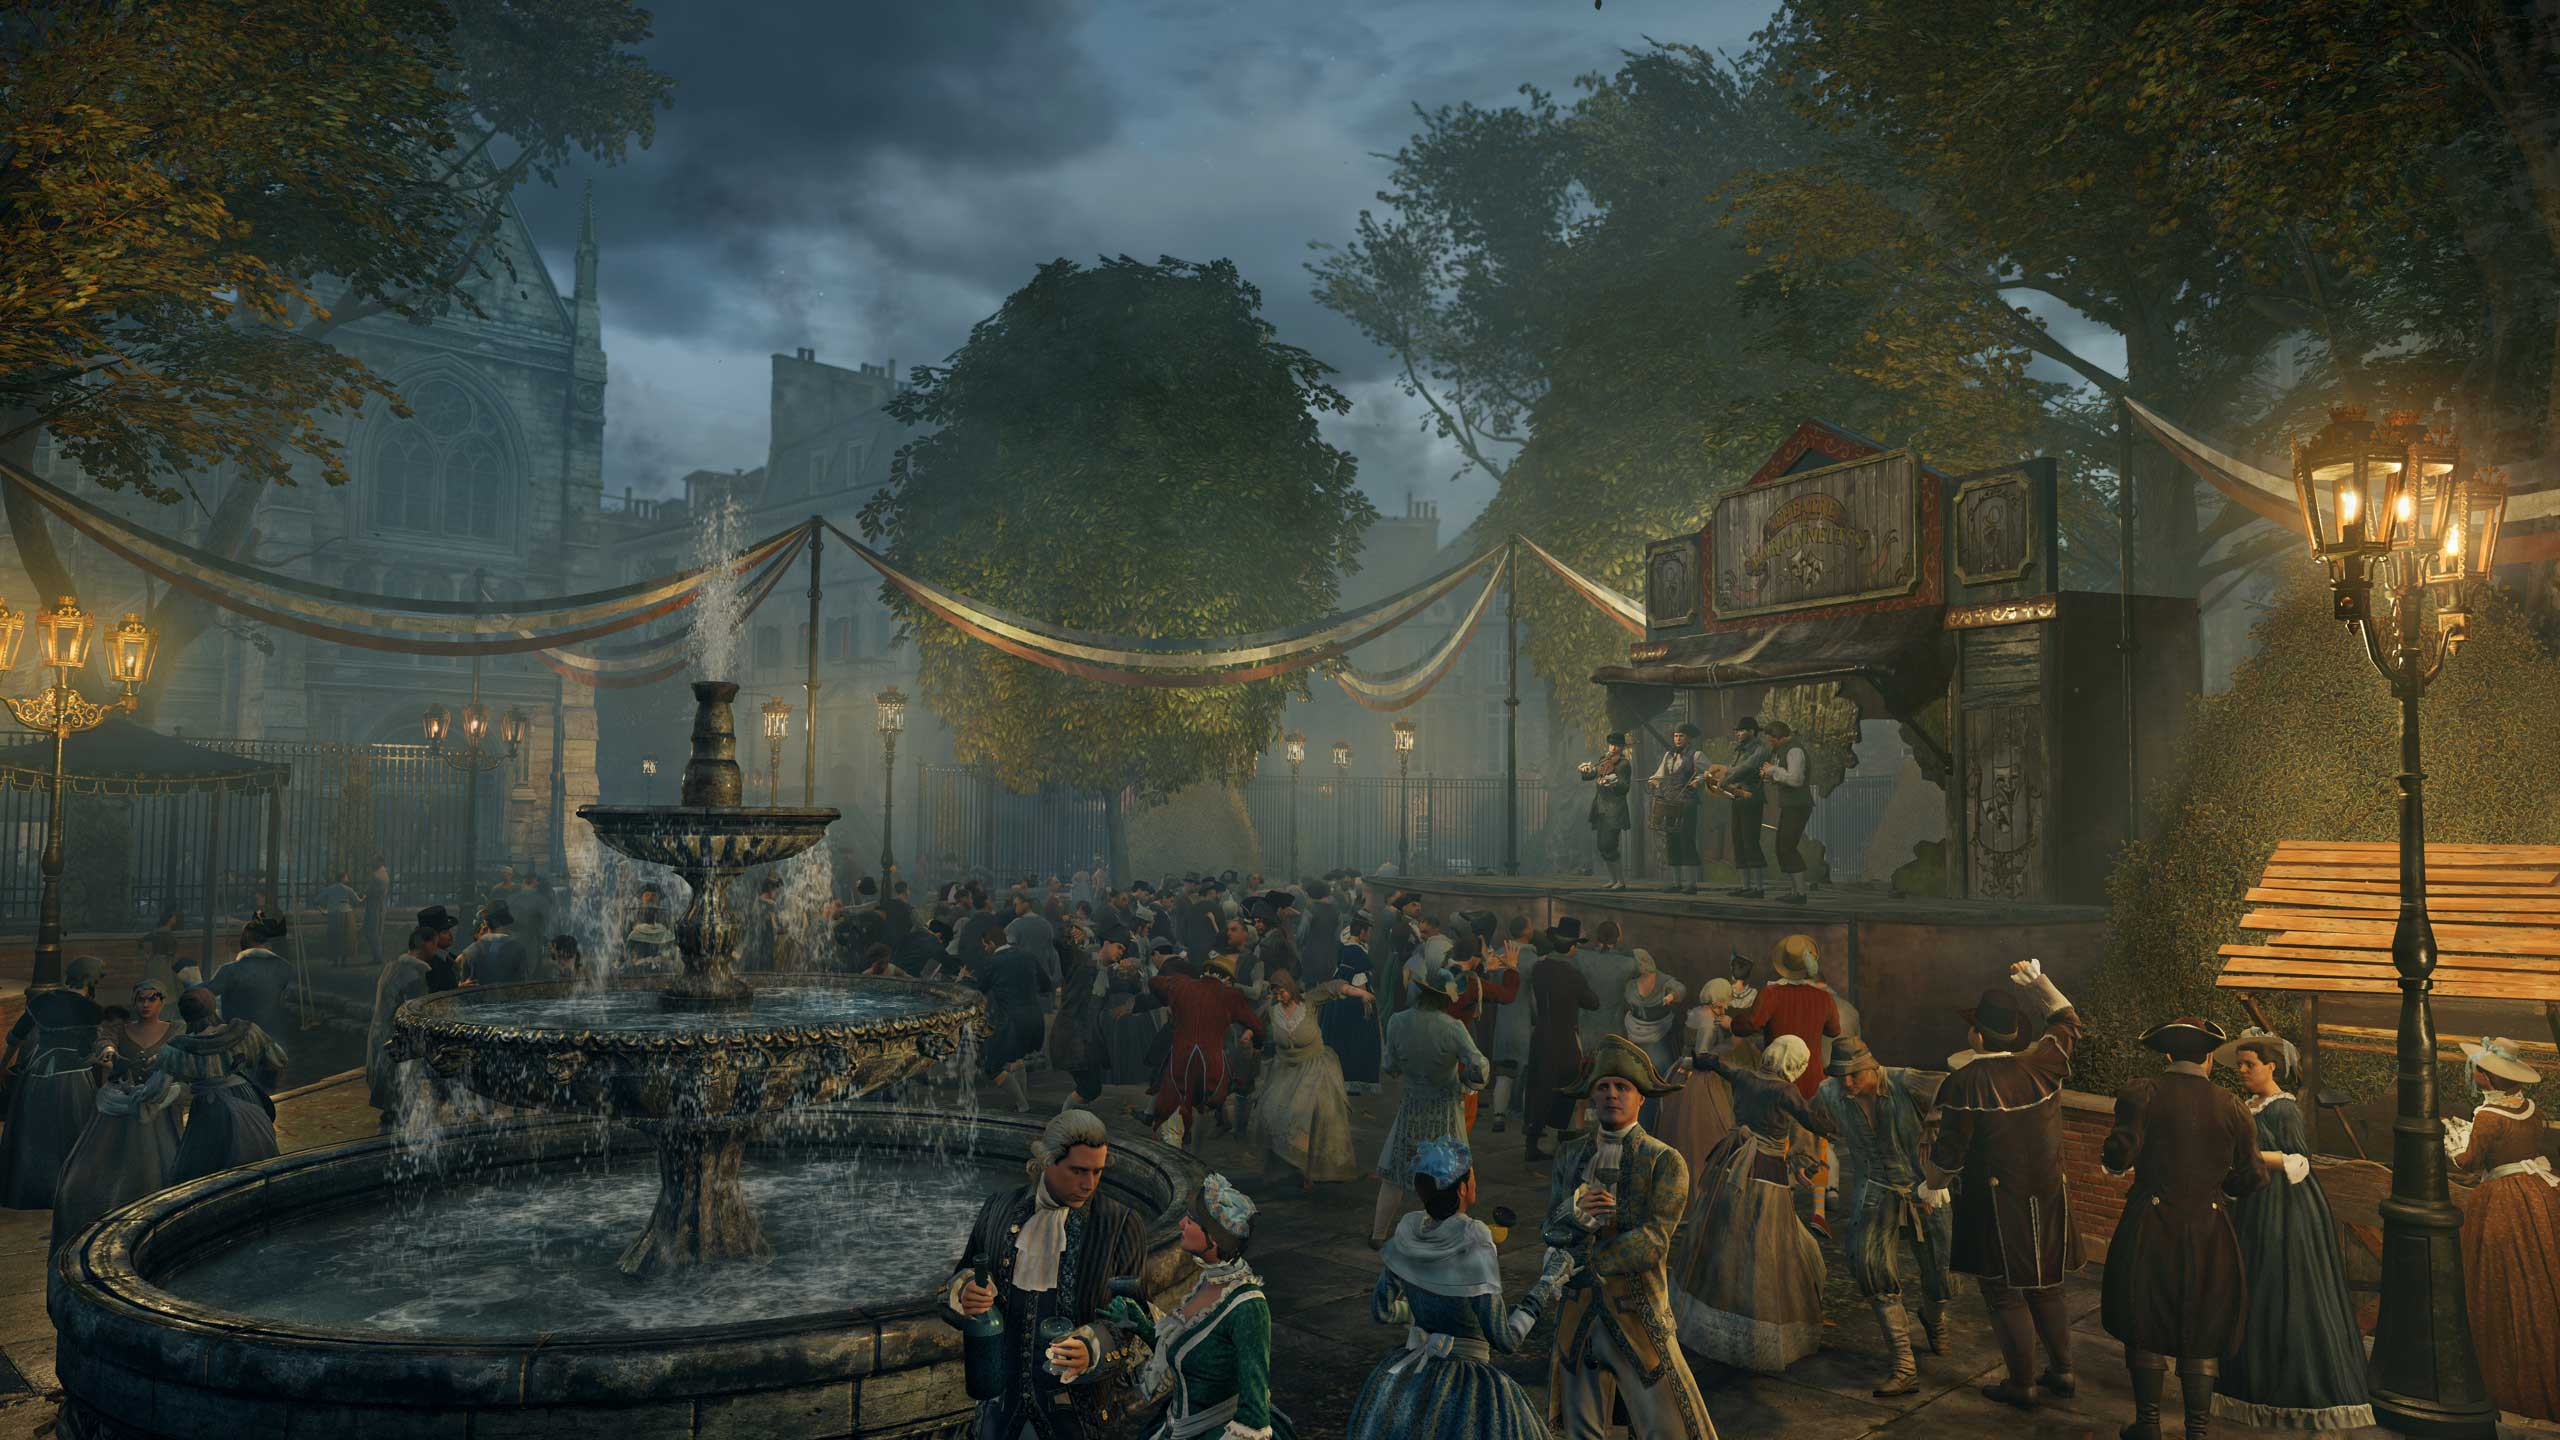 Assassin's Creed Unity. Ubisoft says it  basically remade the whole rendering engine  in its AnvilNext design tool to handle the studio's meticulous recreation of Paris during the French Revolution.